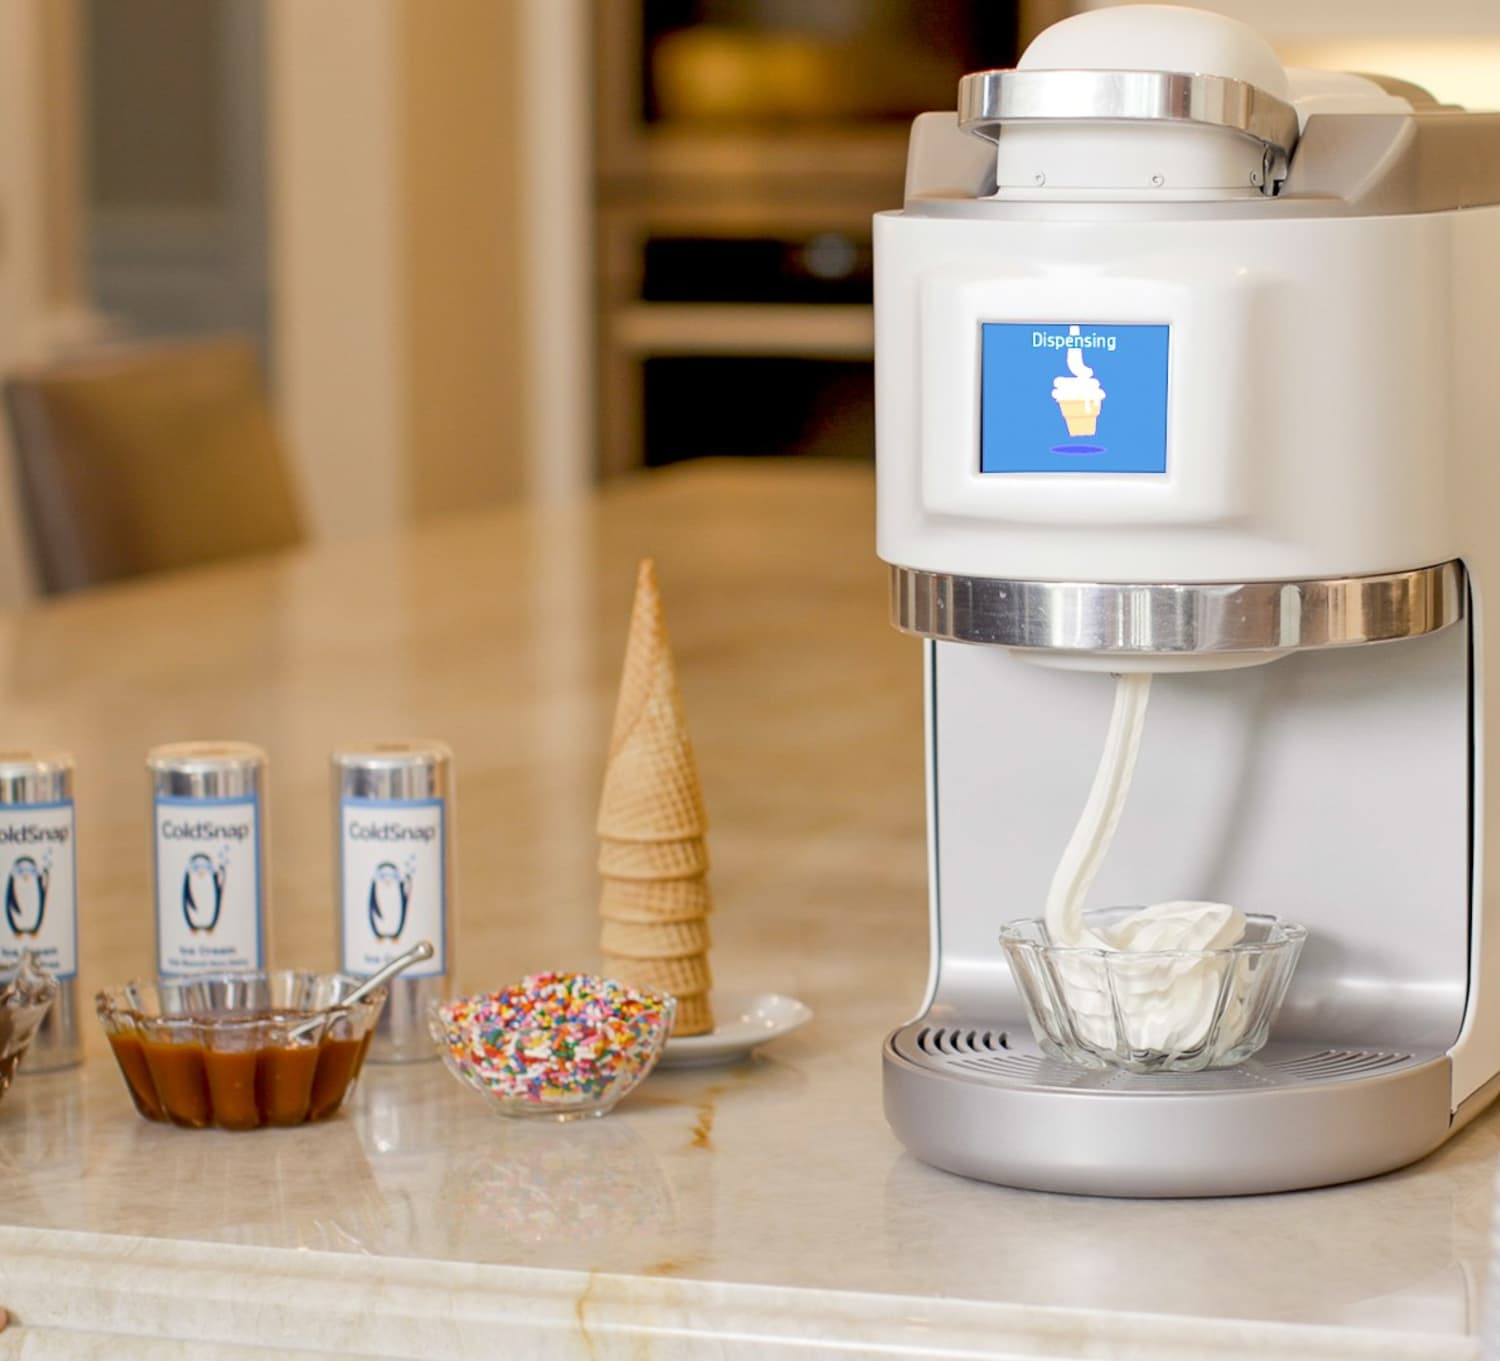 This New Pod Machine Is Basically a Keurig, but for Ice Cream